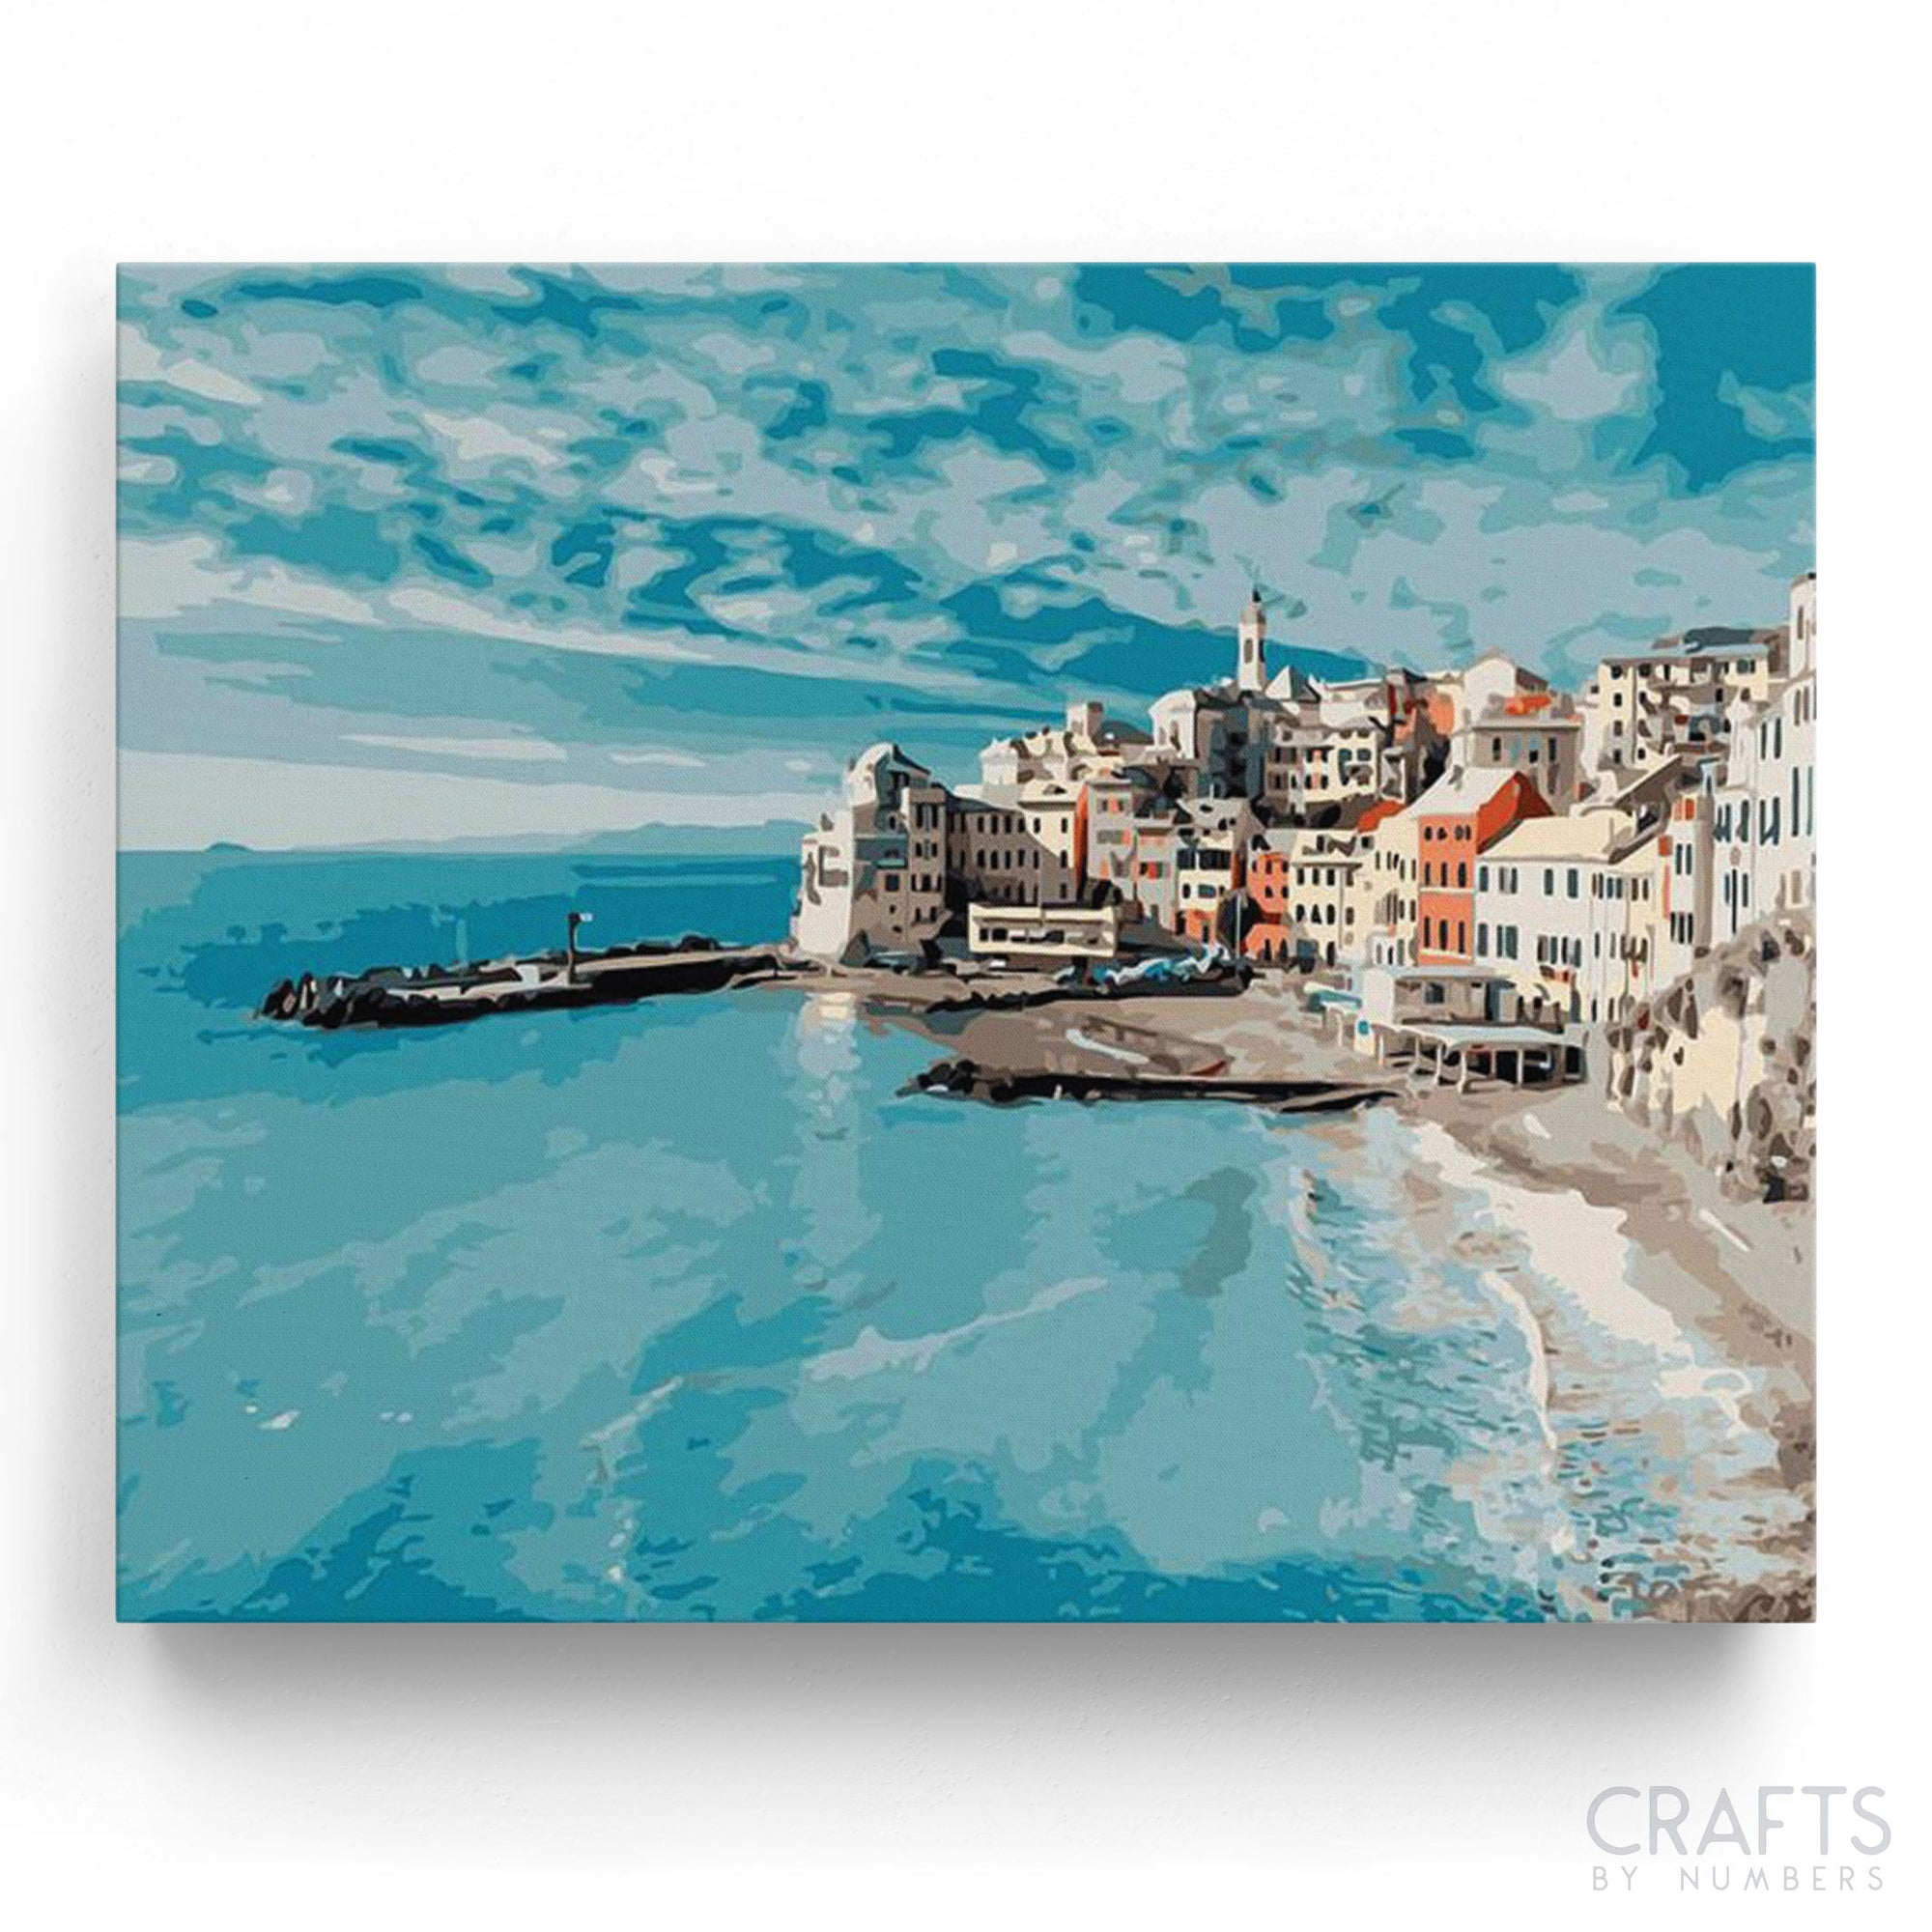 The Blue Ocean City of Italy paint by numbers canvas for adults from paint pots